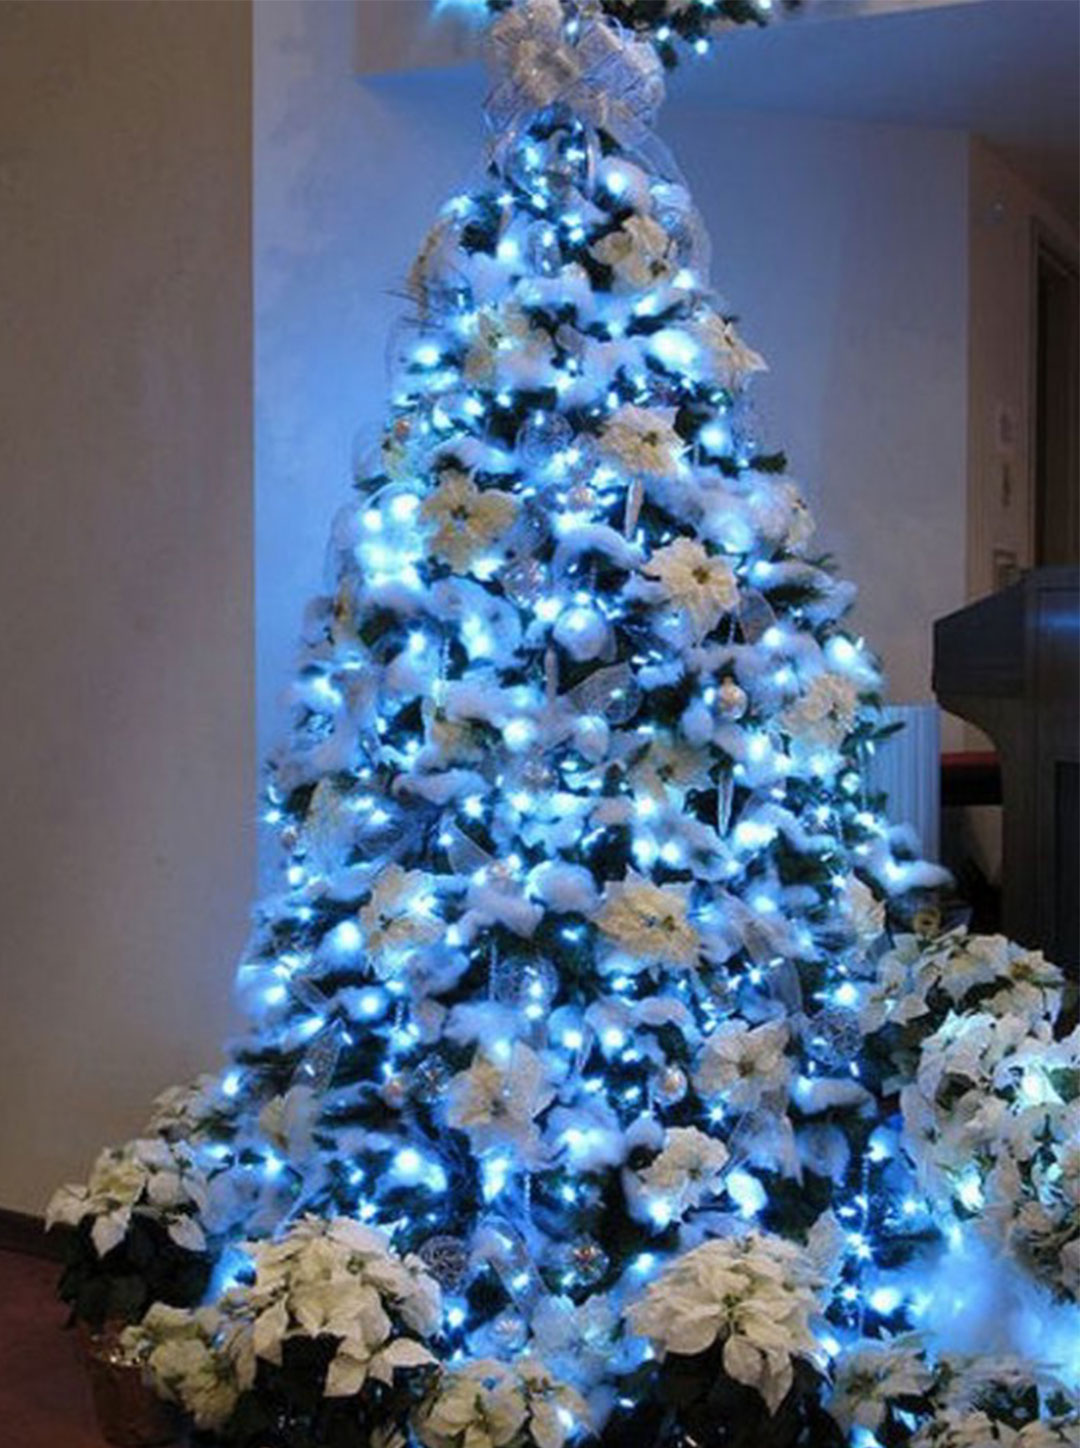 29 Inspirational Christmas Tree Decorating Ideas 2019 \u2013 2020